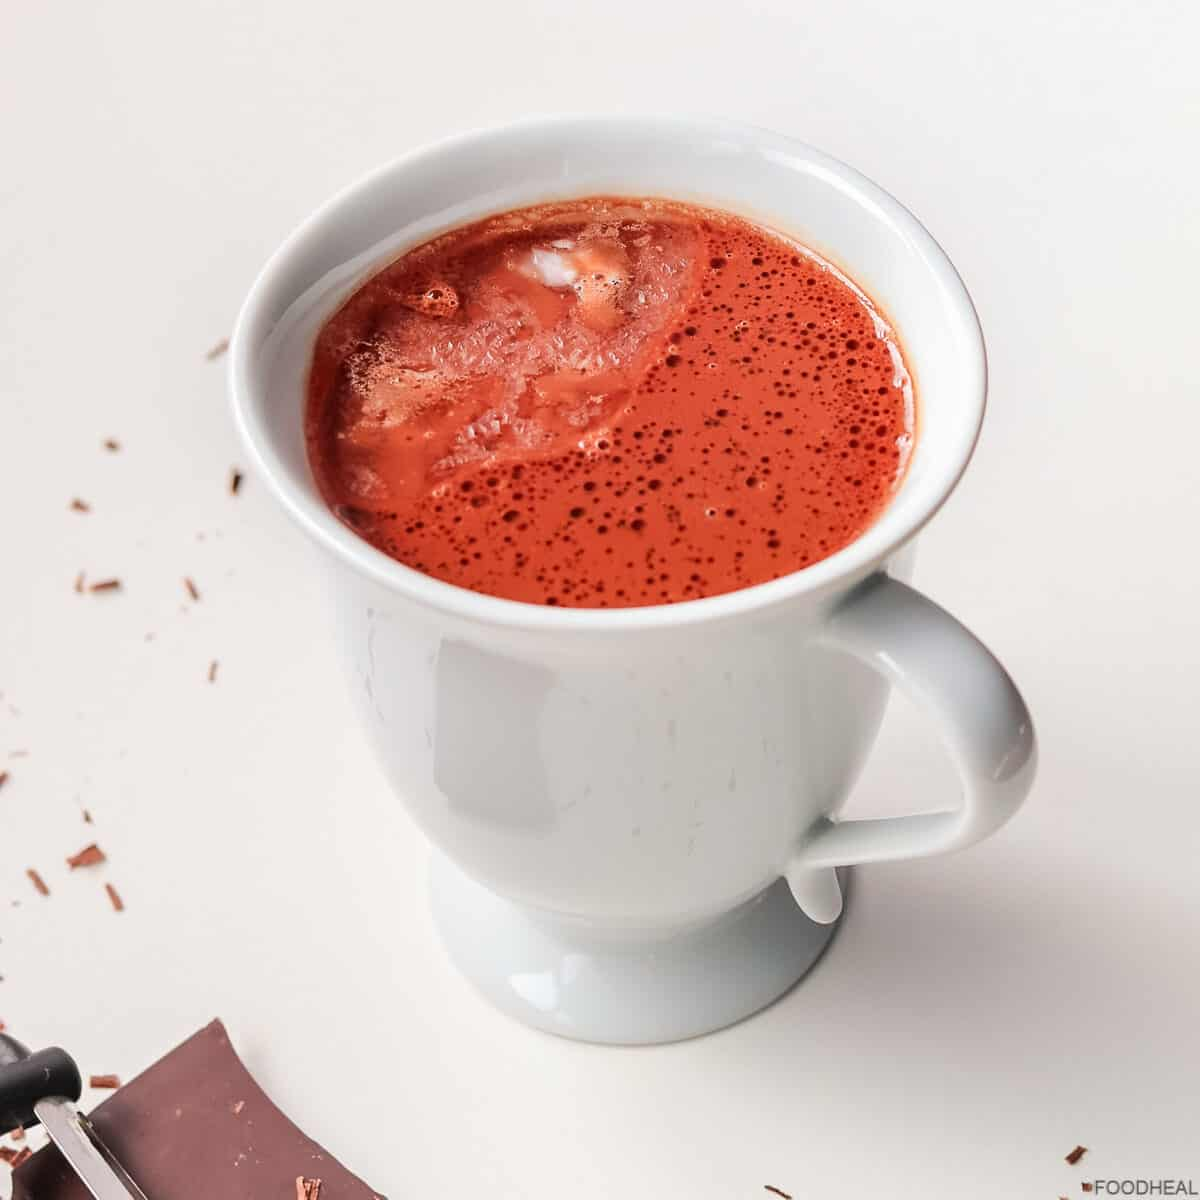 A cup of hot chocolate with dark chocolate & coconut oil